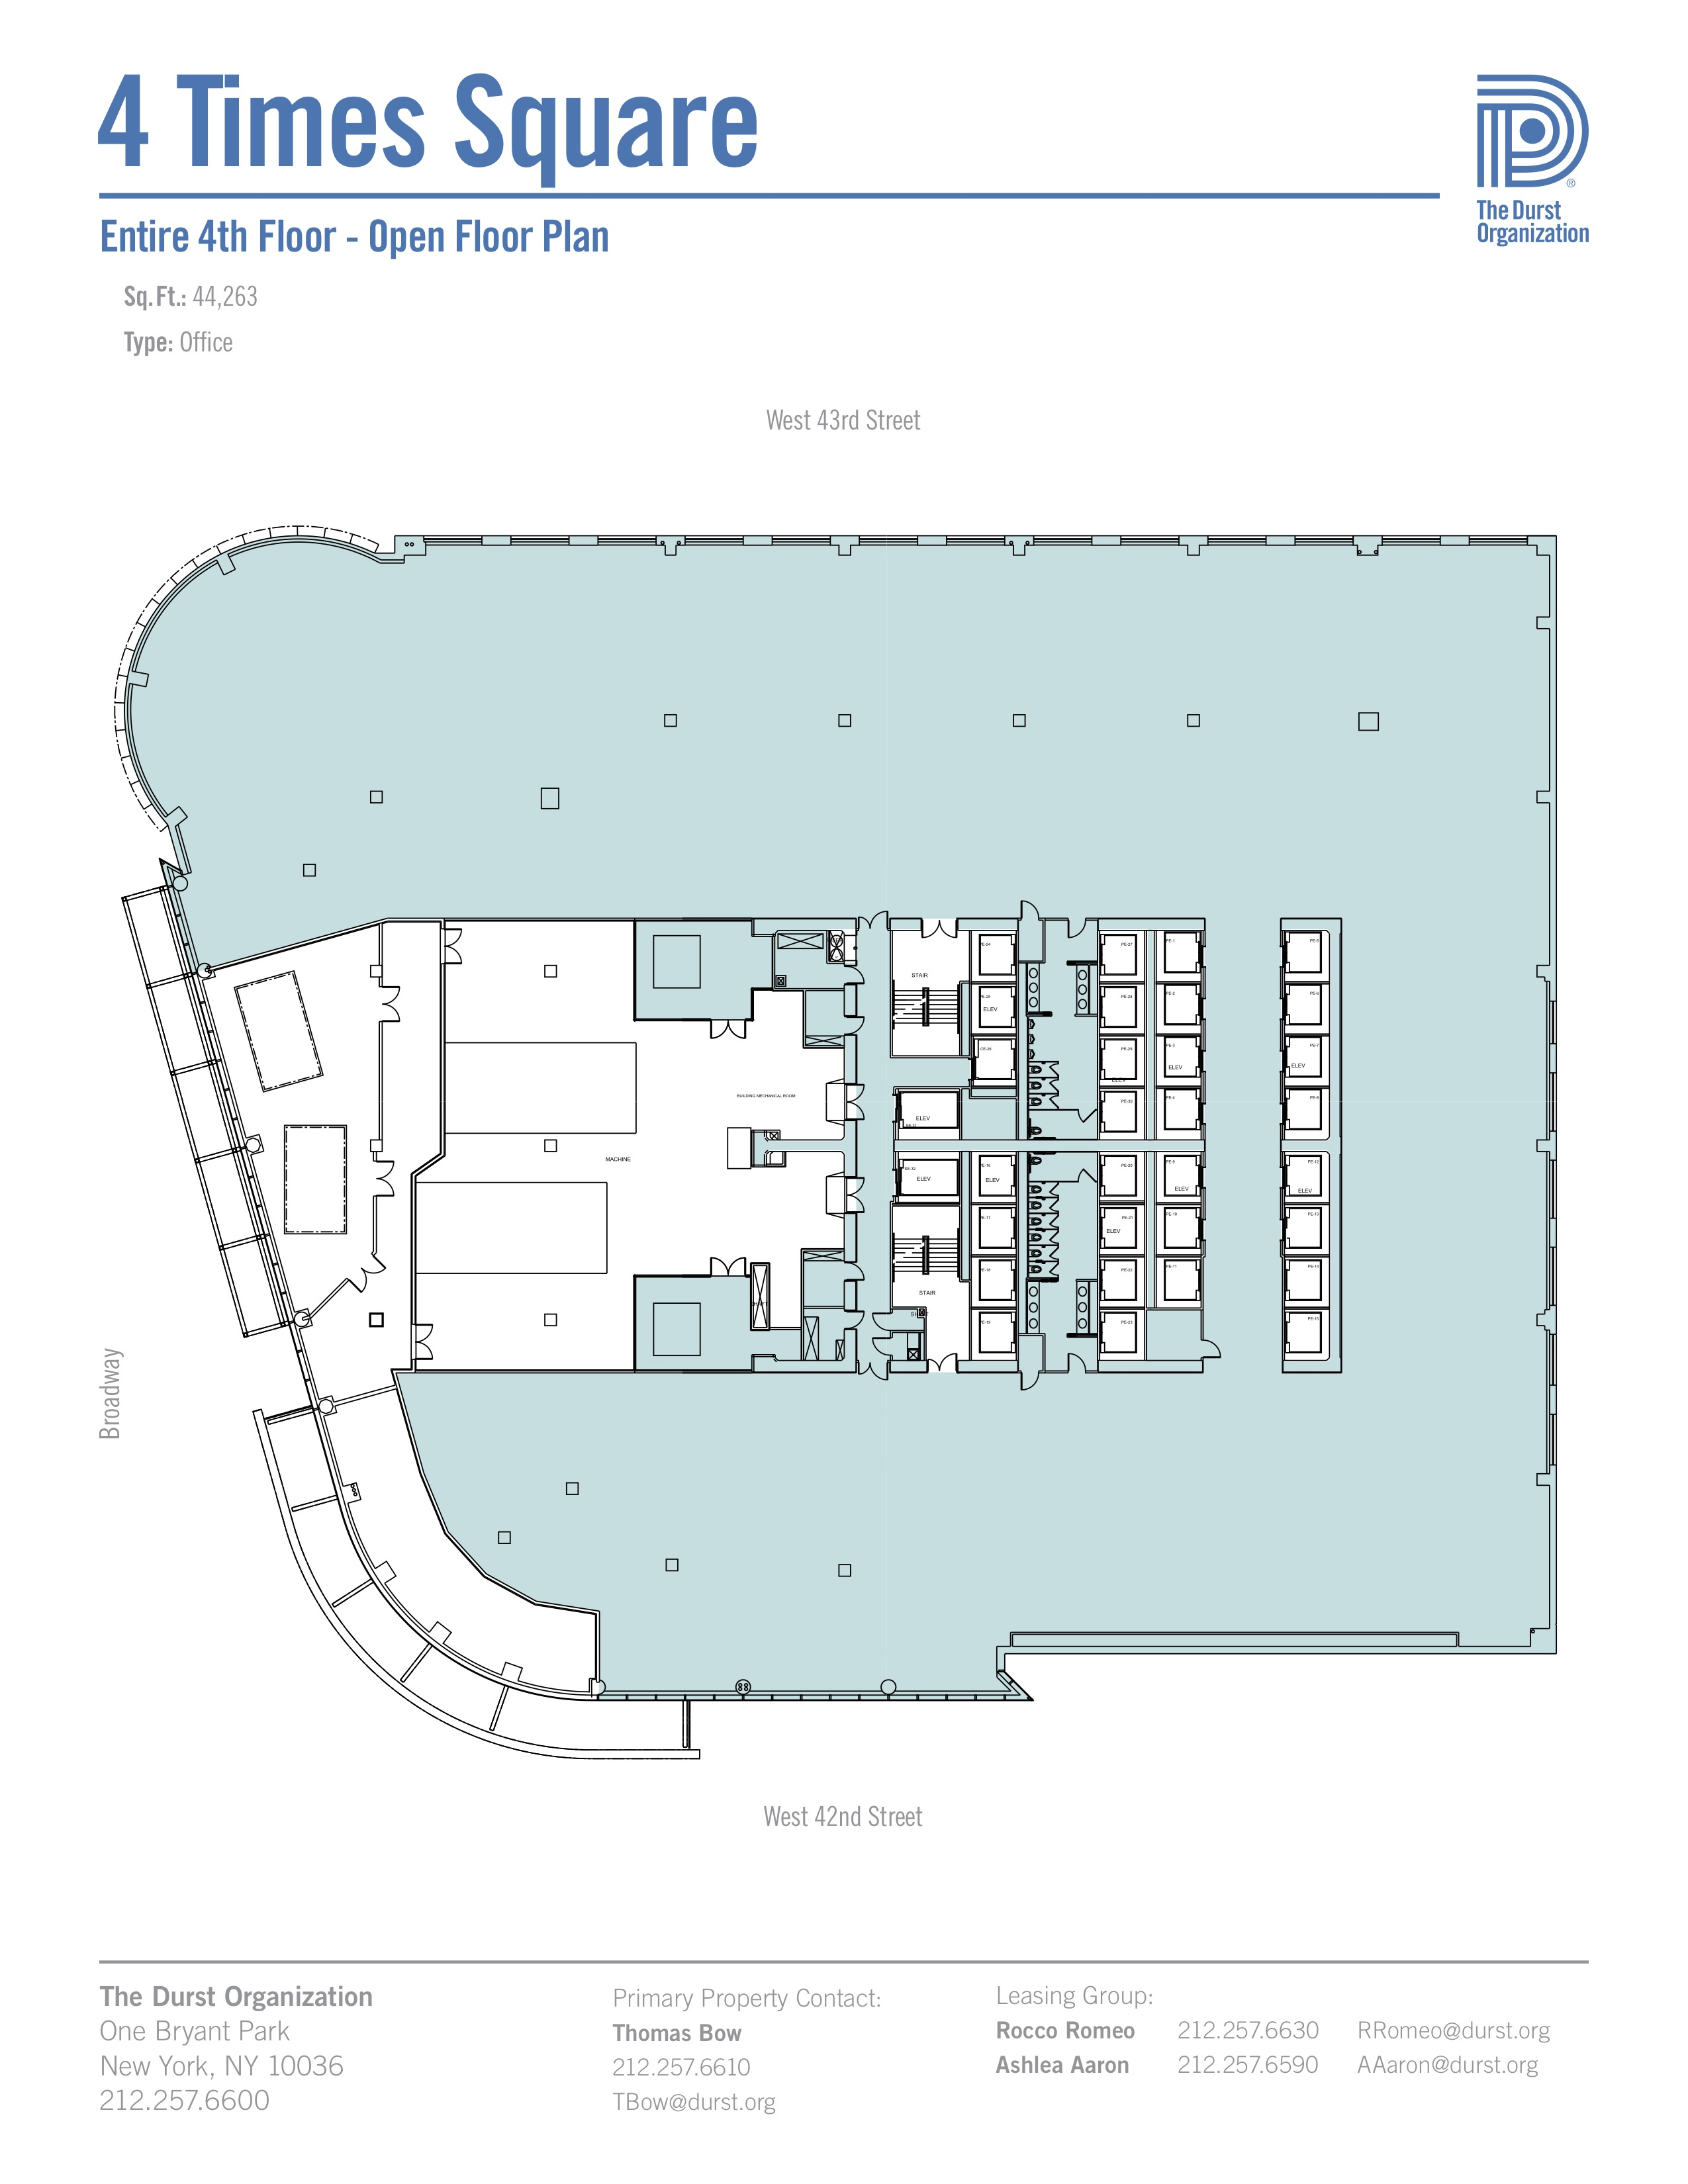 4 times square conde nast building floorplans new york city for New construction floor plans